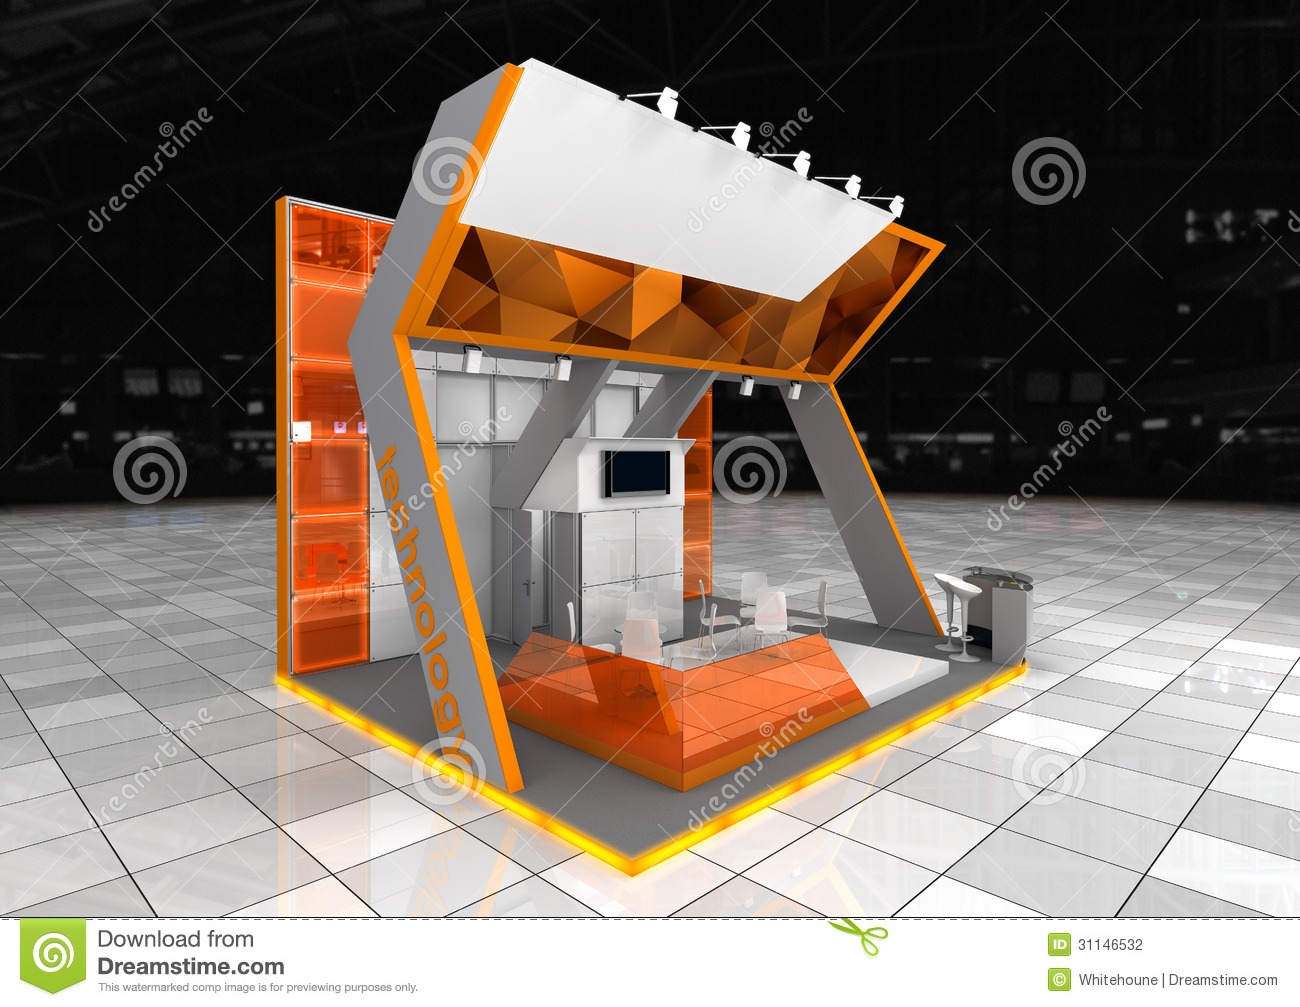 Modern Exhibition Stand Near Me : Exhibition stand stock illustration. illustration of indoor 31146532